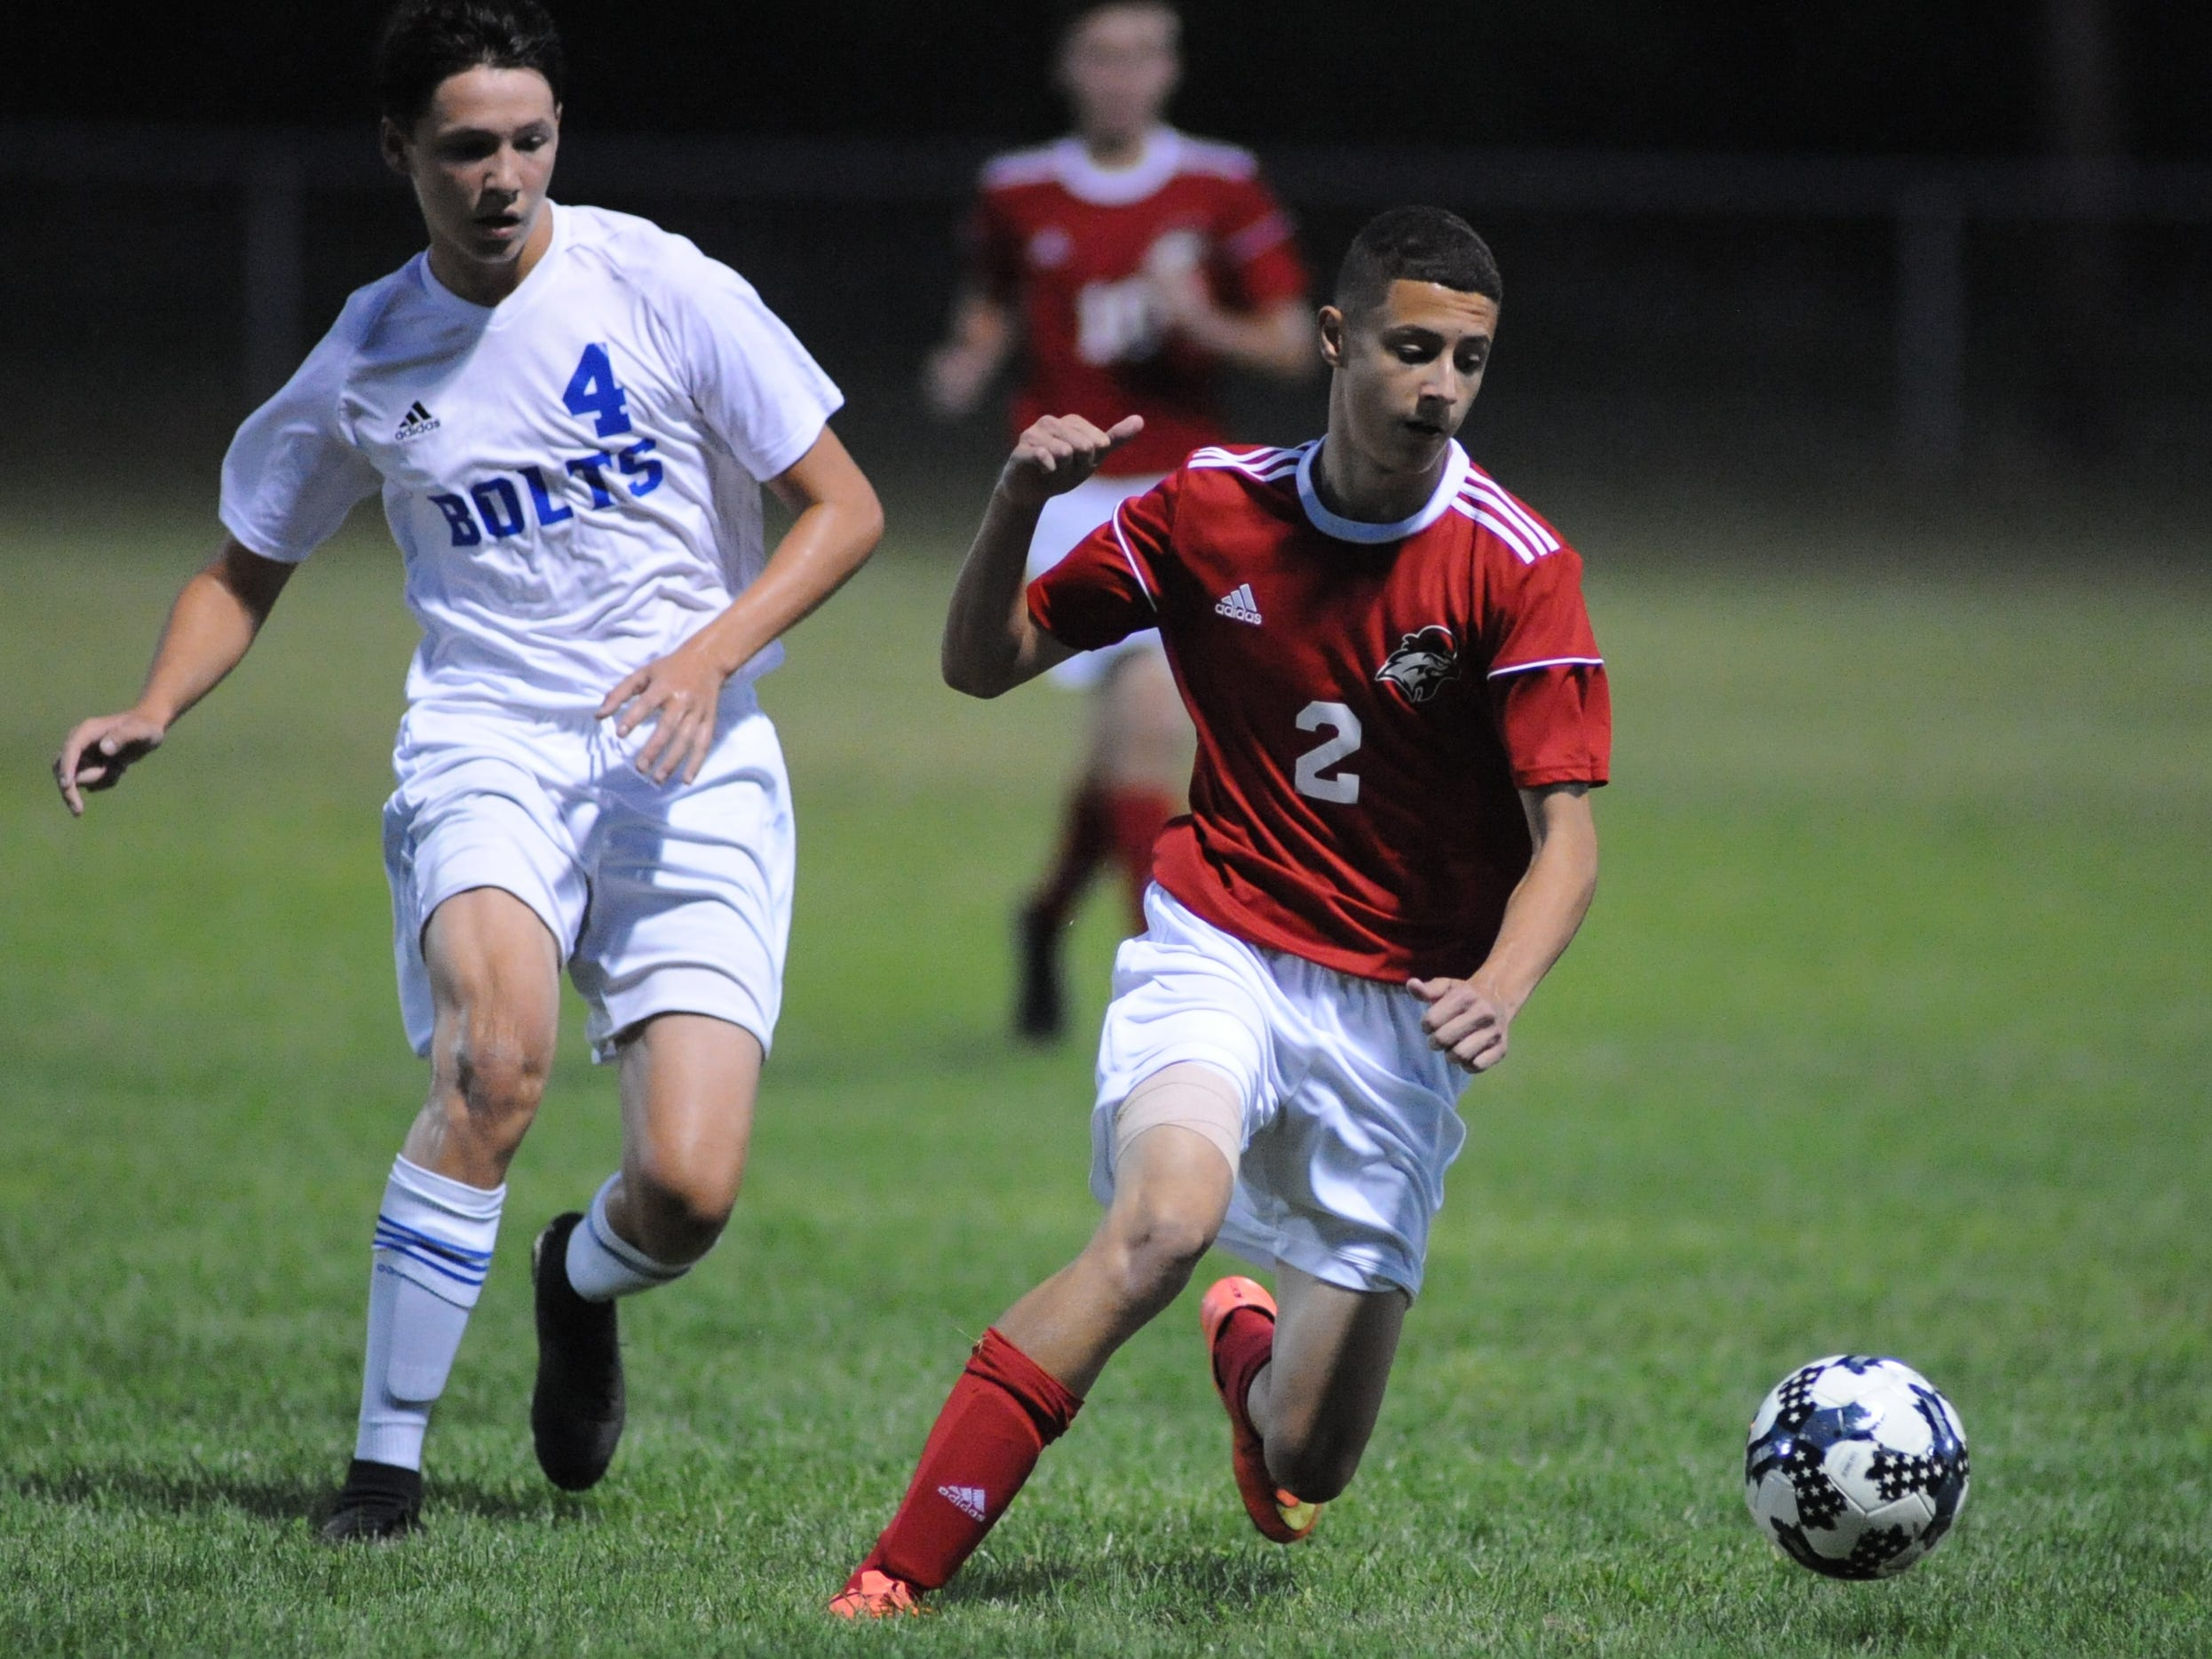 Vineland's Benjamin Robinson moves the ball during a boys soccer game against Millville at Romano Sports Complex in Vineland, Monday, Sept. 17, 2018.